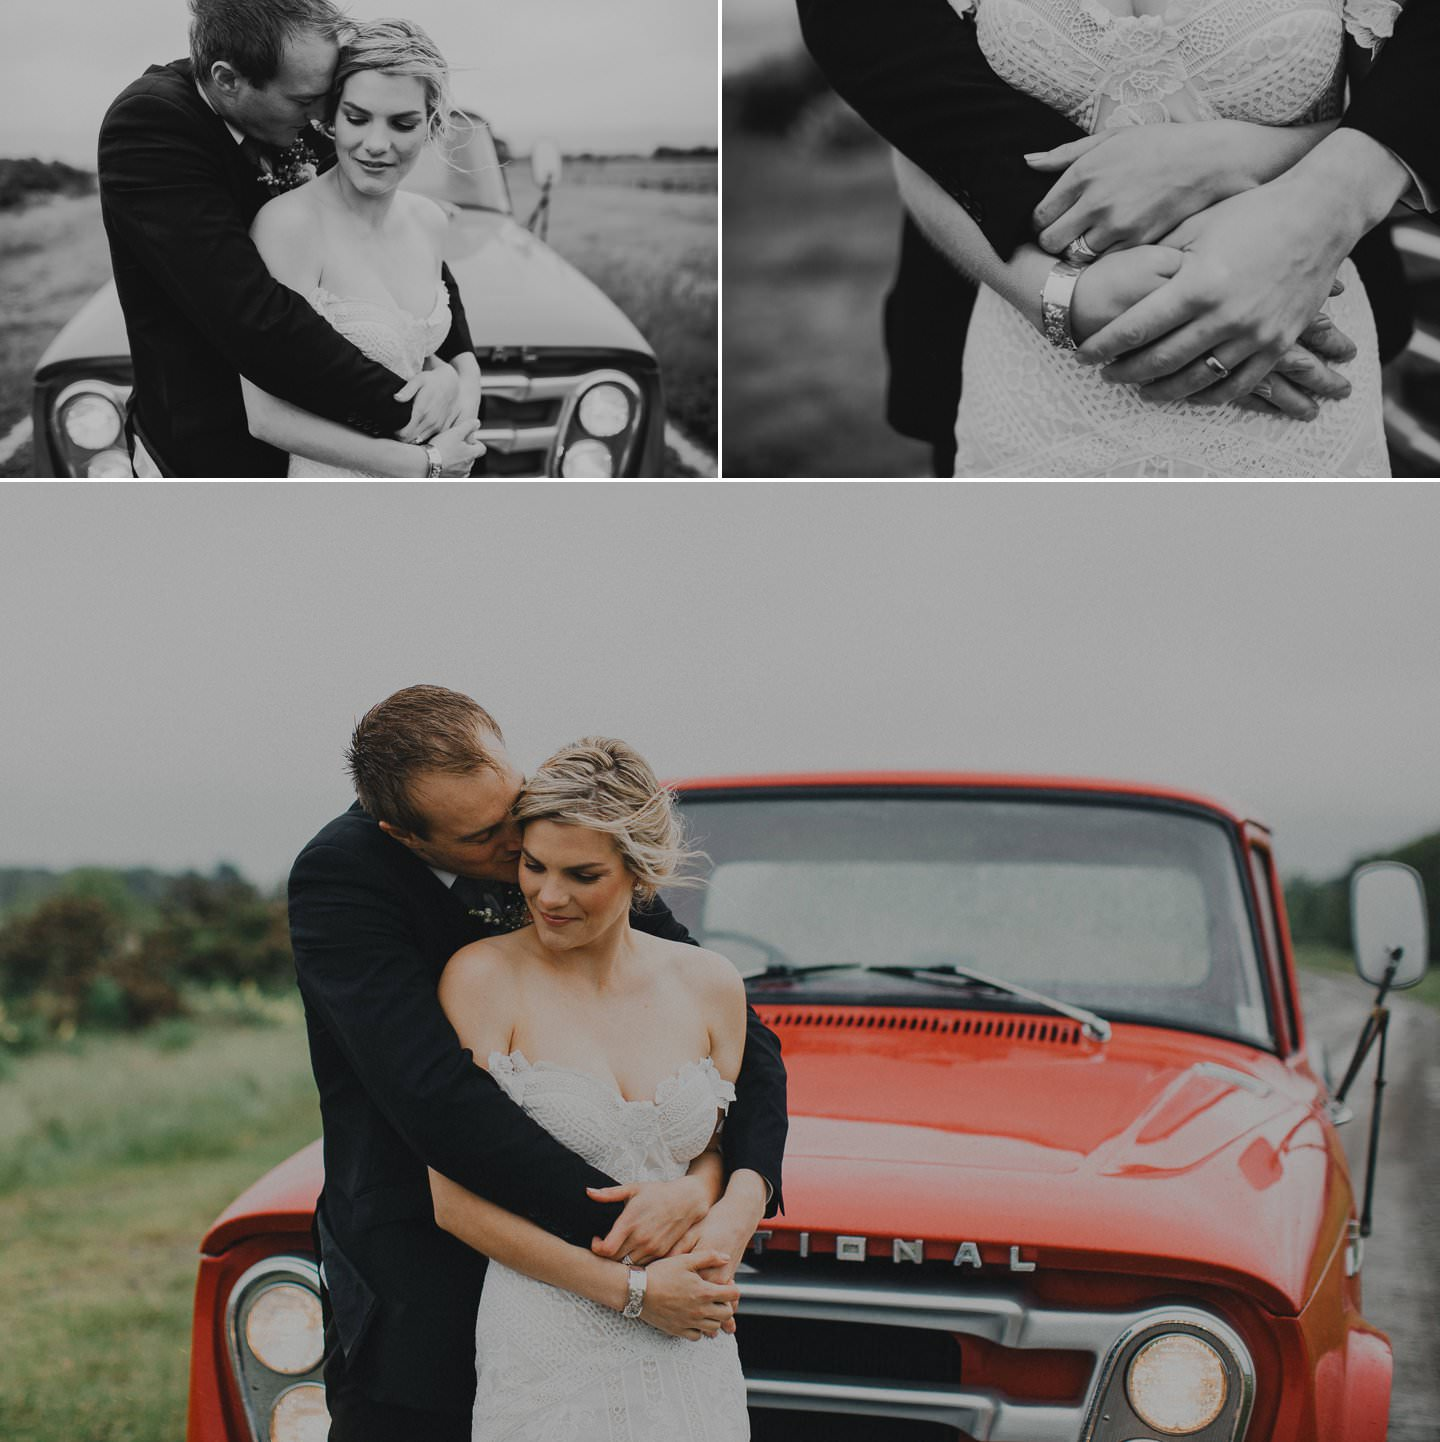 Couple photos of bride and groom